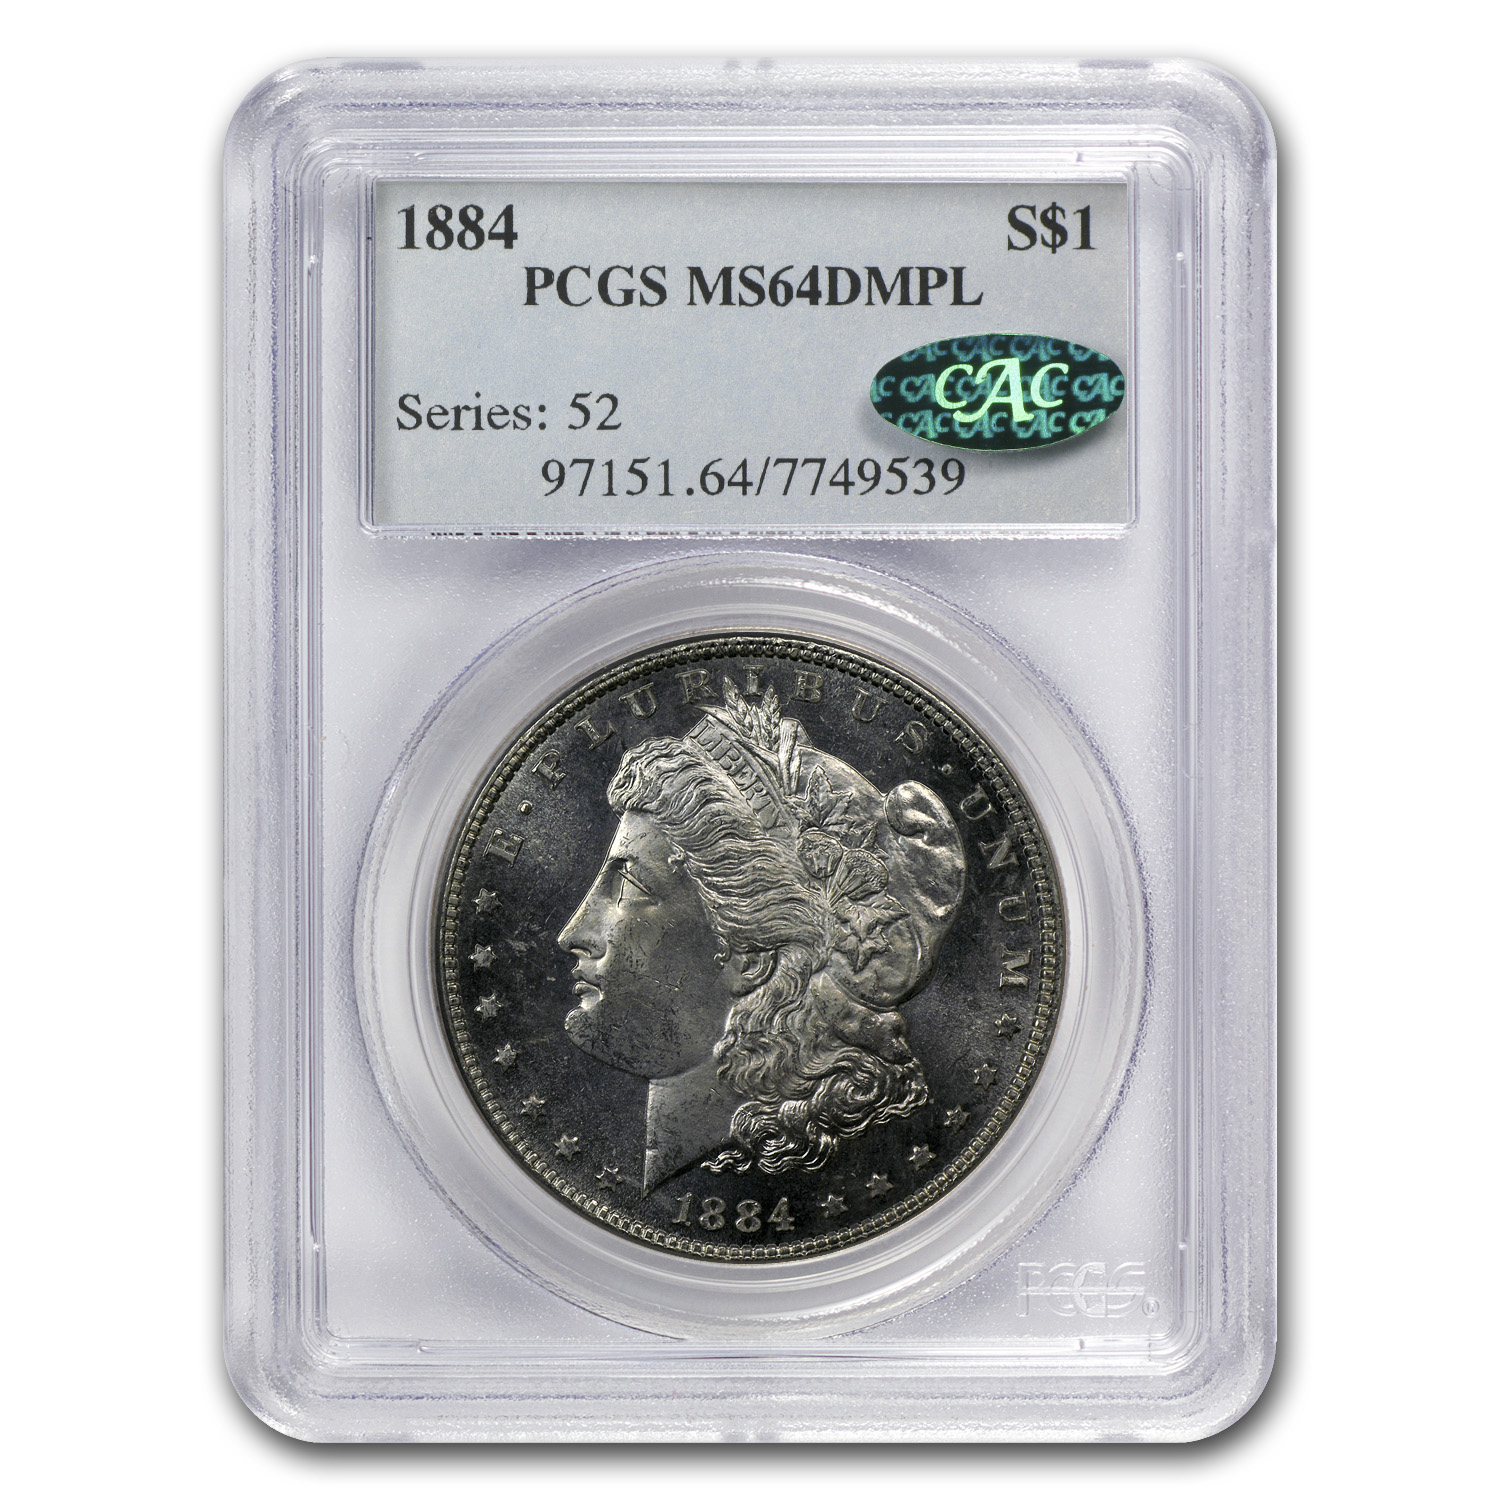 1884 Morgan Dollar MS-64 DMPL PCGS (CAC)